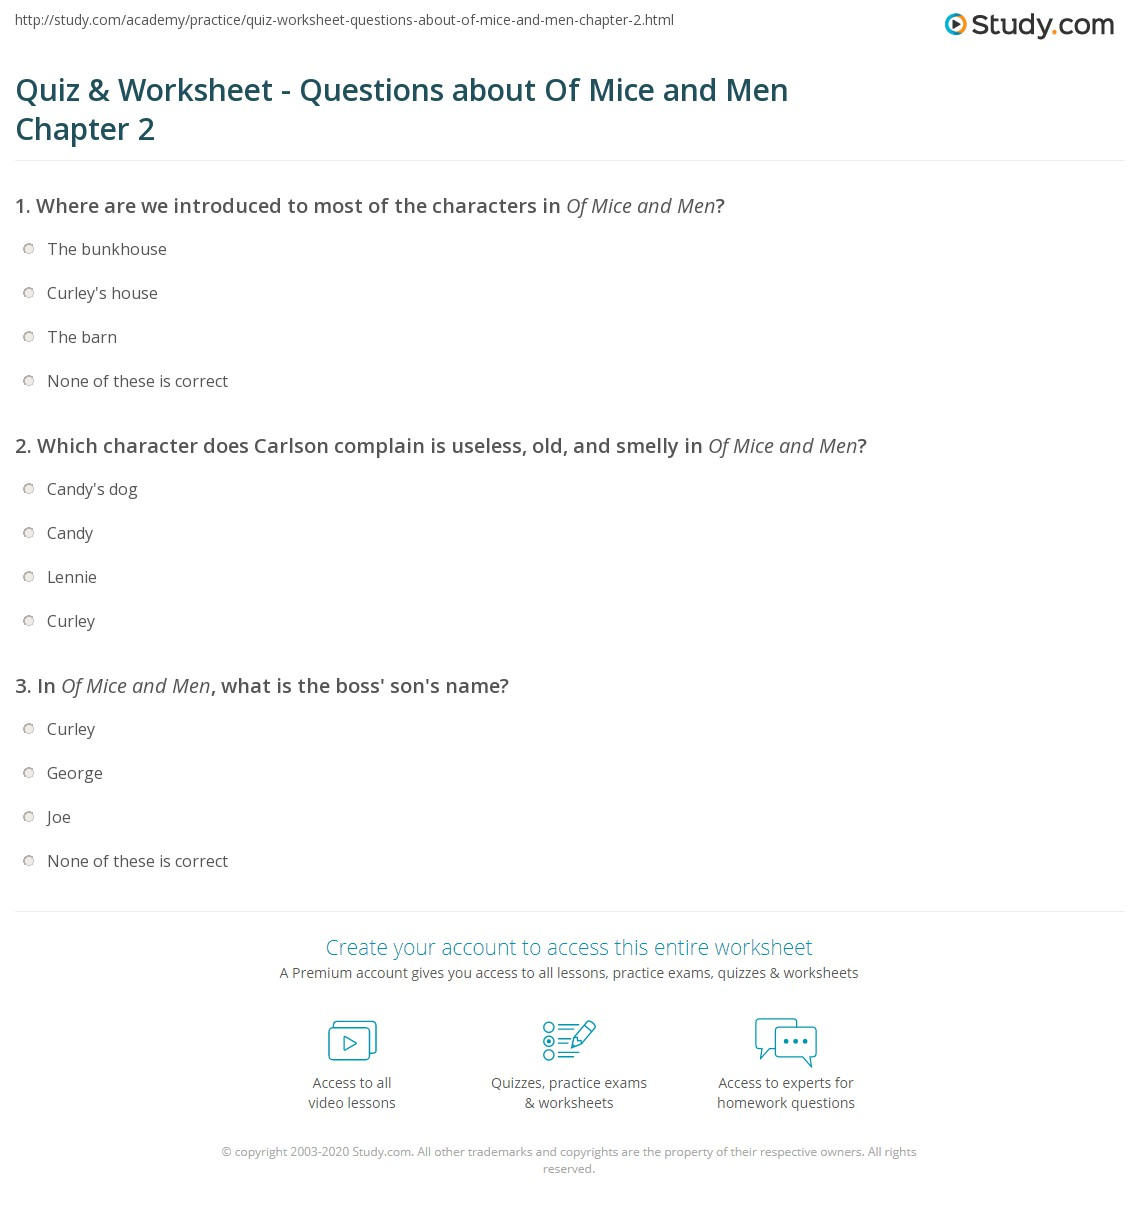 quiz worksheet questions about of mice and men chapter 2 print of mice and men chapter 2 summary quotes worksheet